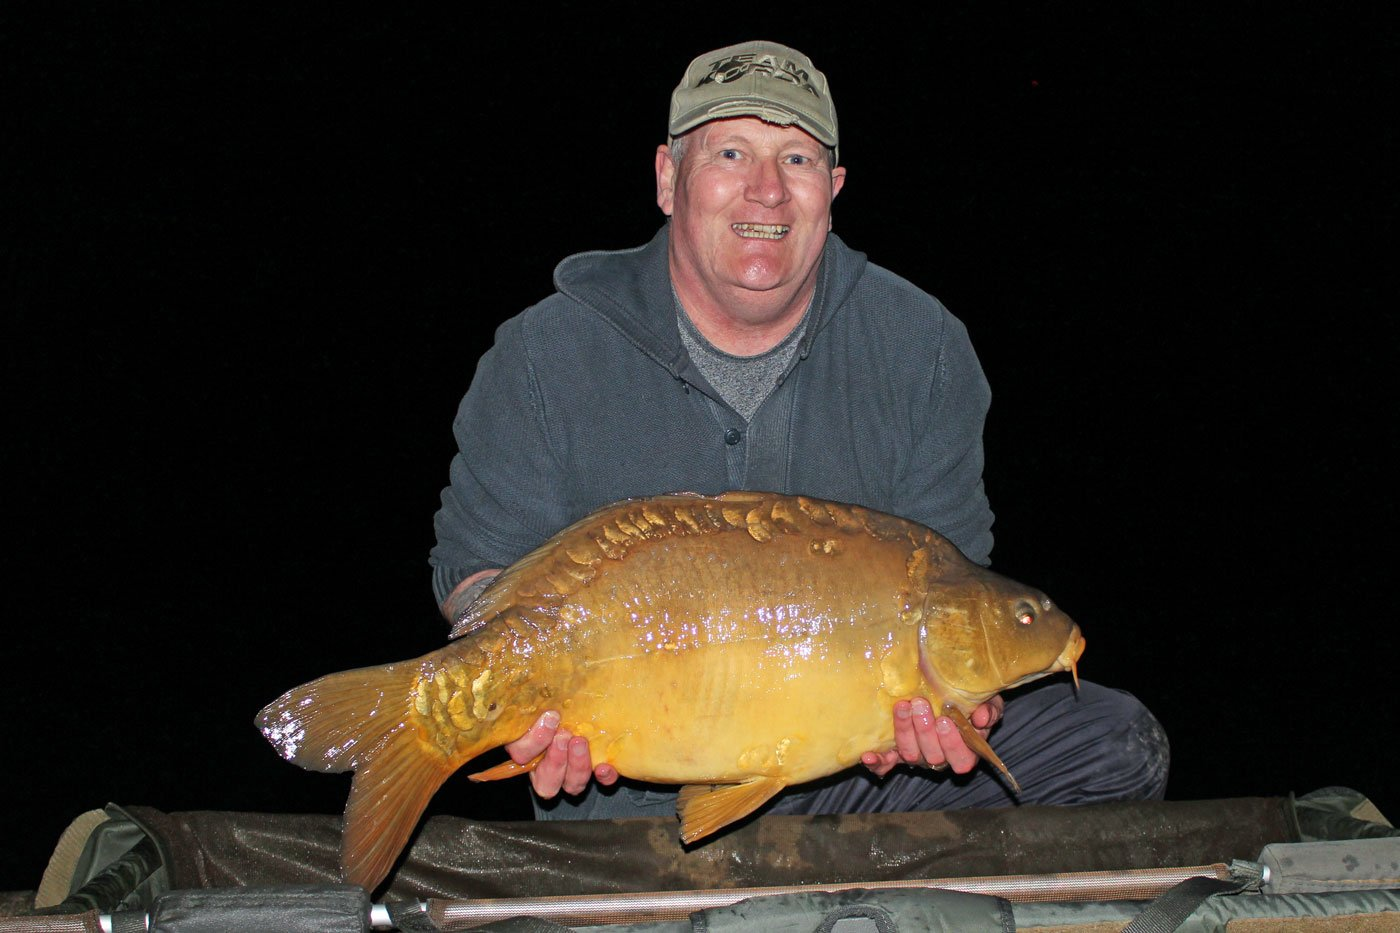 Mark with a mirror carp of 29lbs